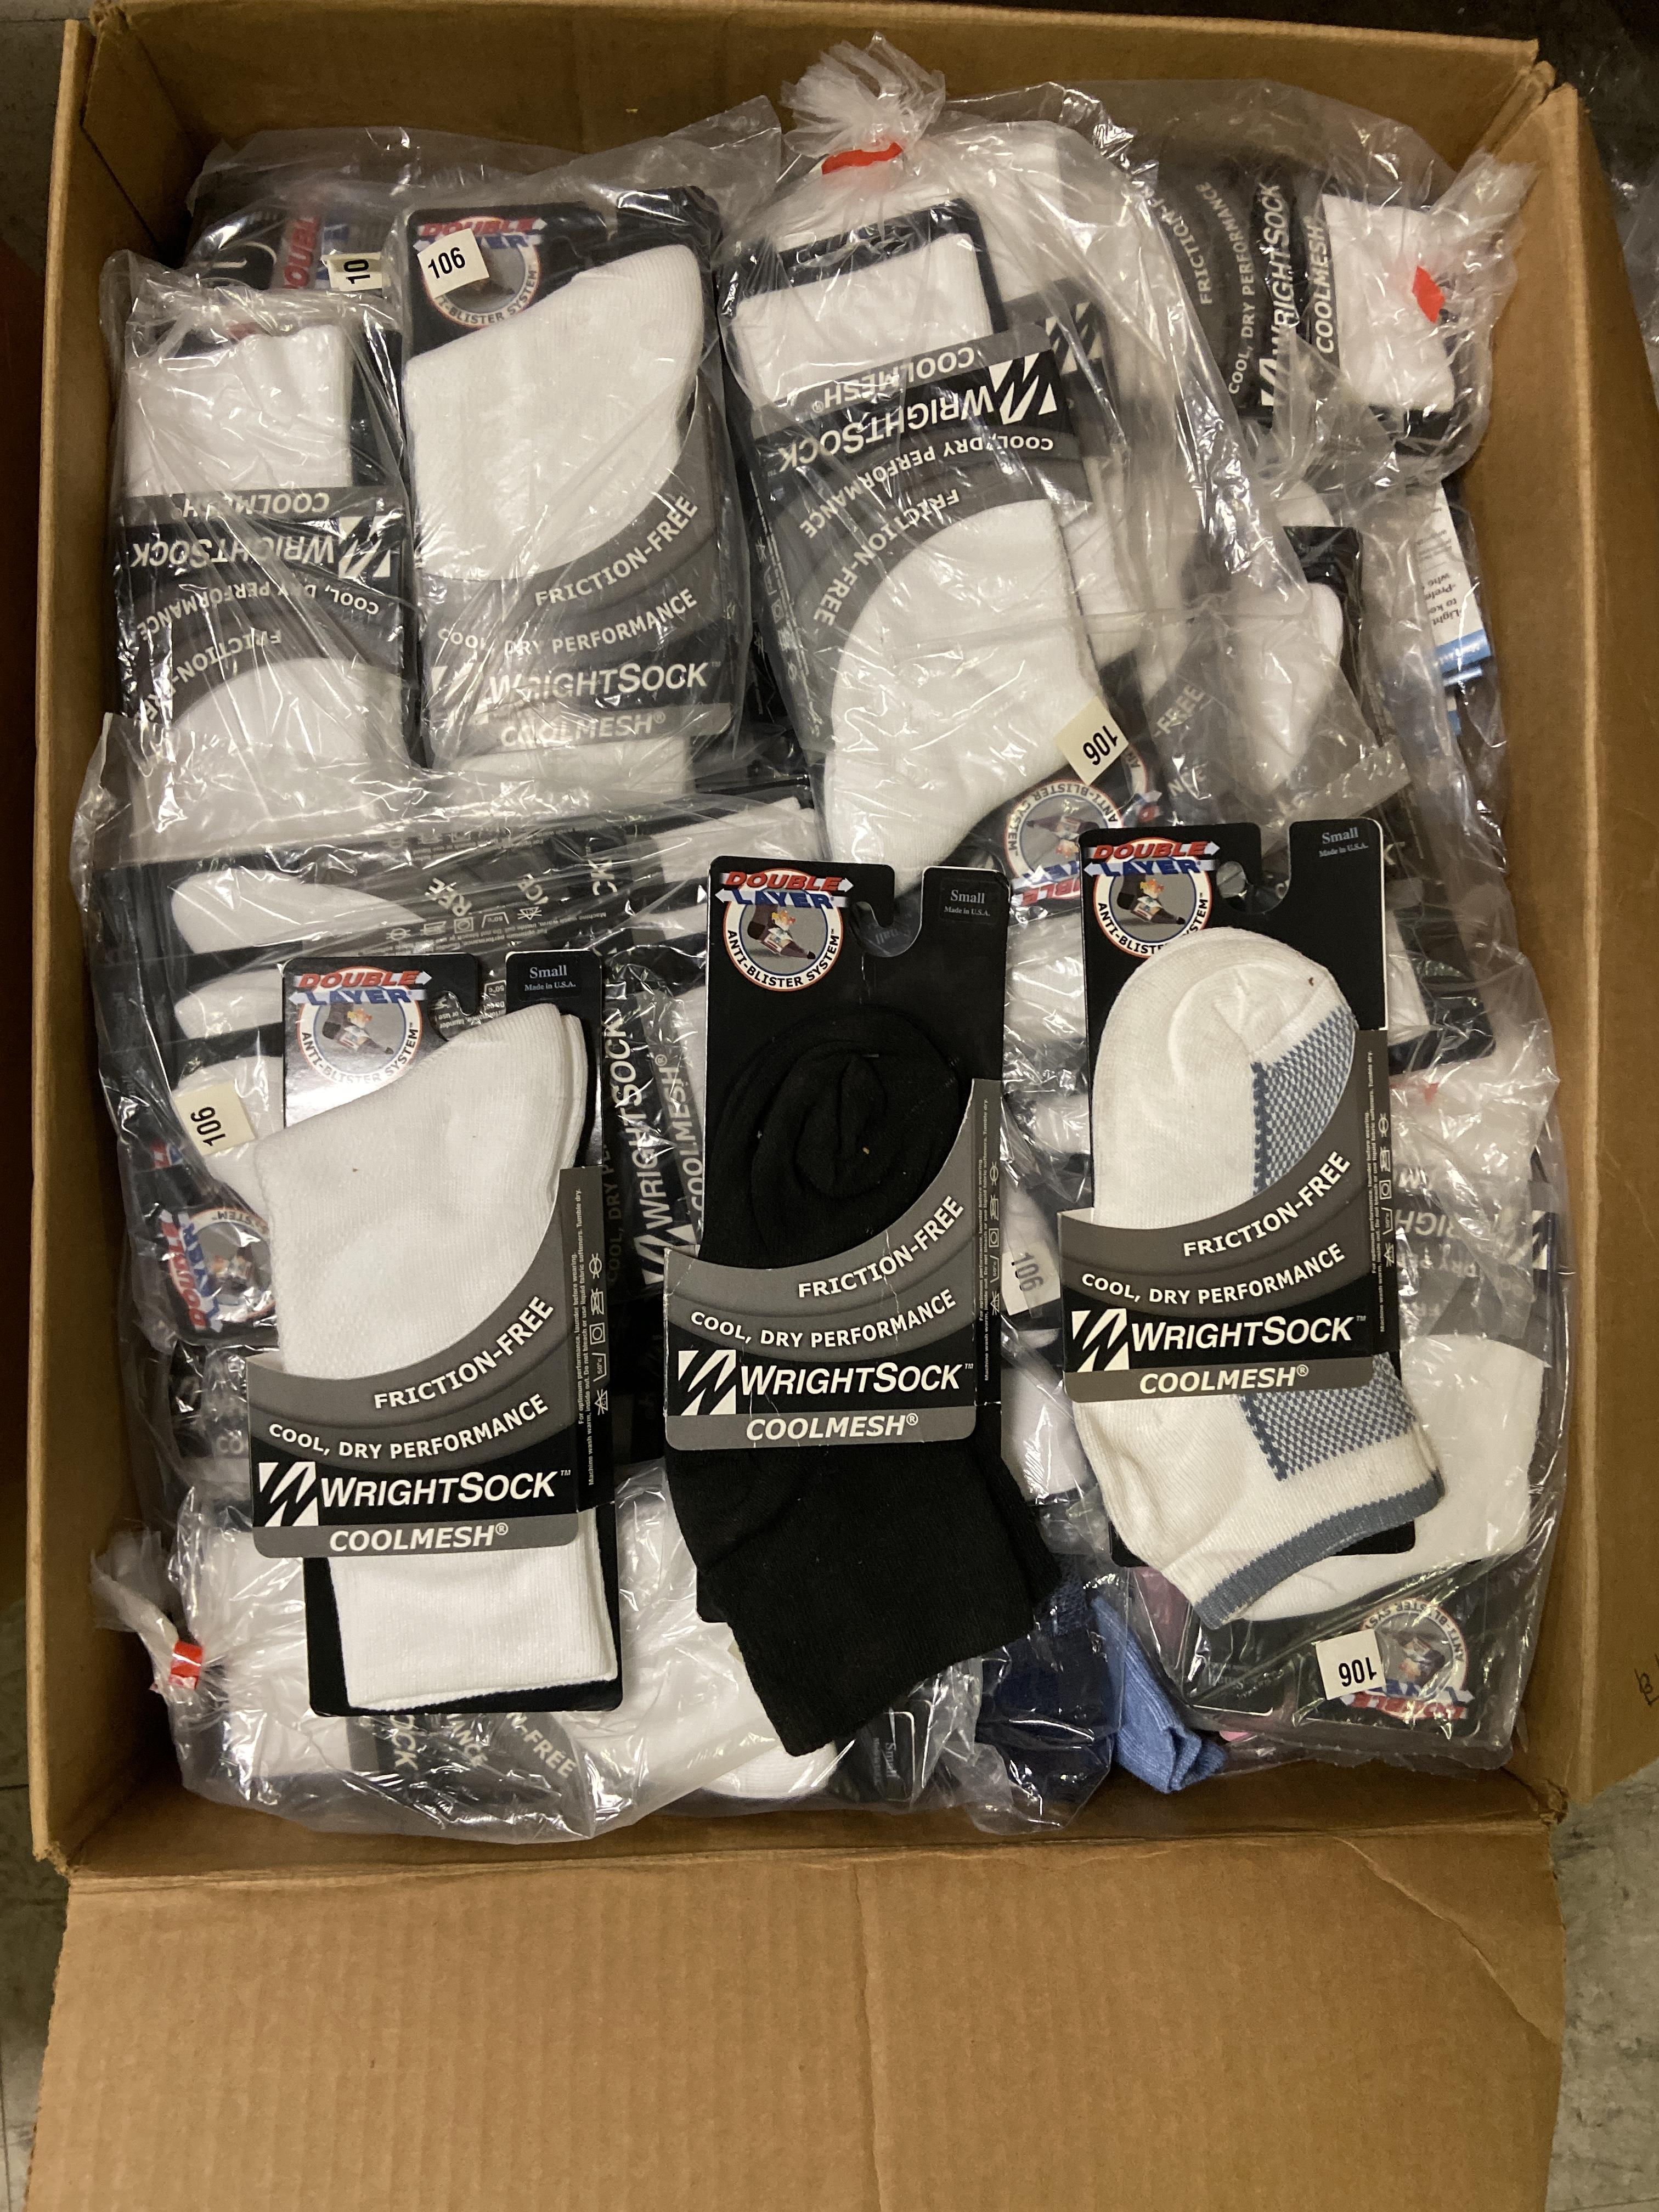 500+ packs of New Socks, Wrightsocks Various Styles, Various Colors and Styles - Image 5 of 6